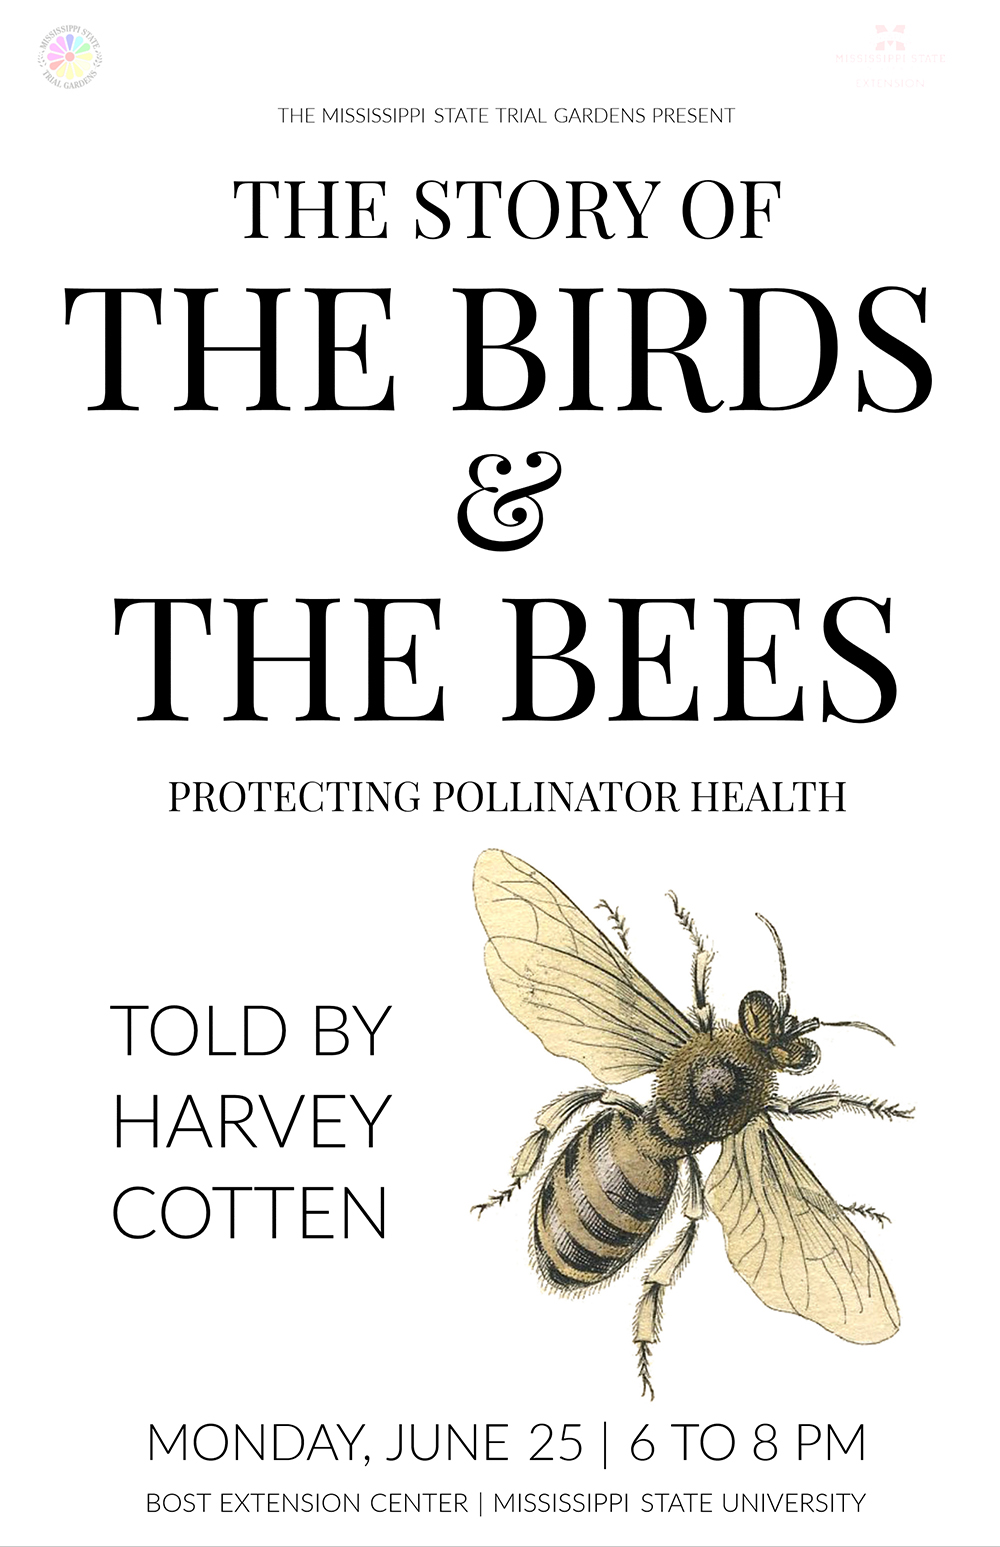 The Story of The Birds and the Bees